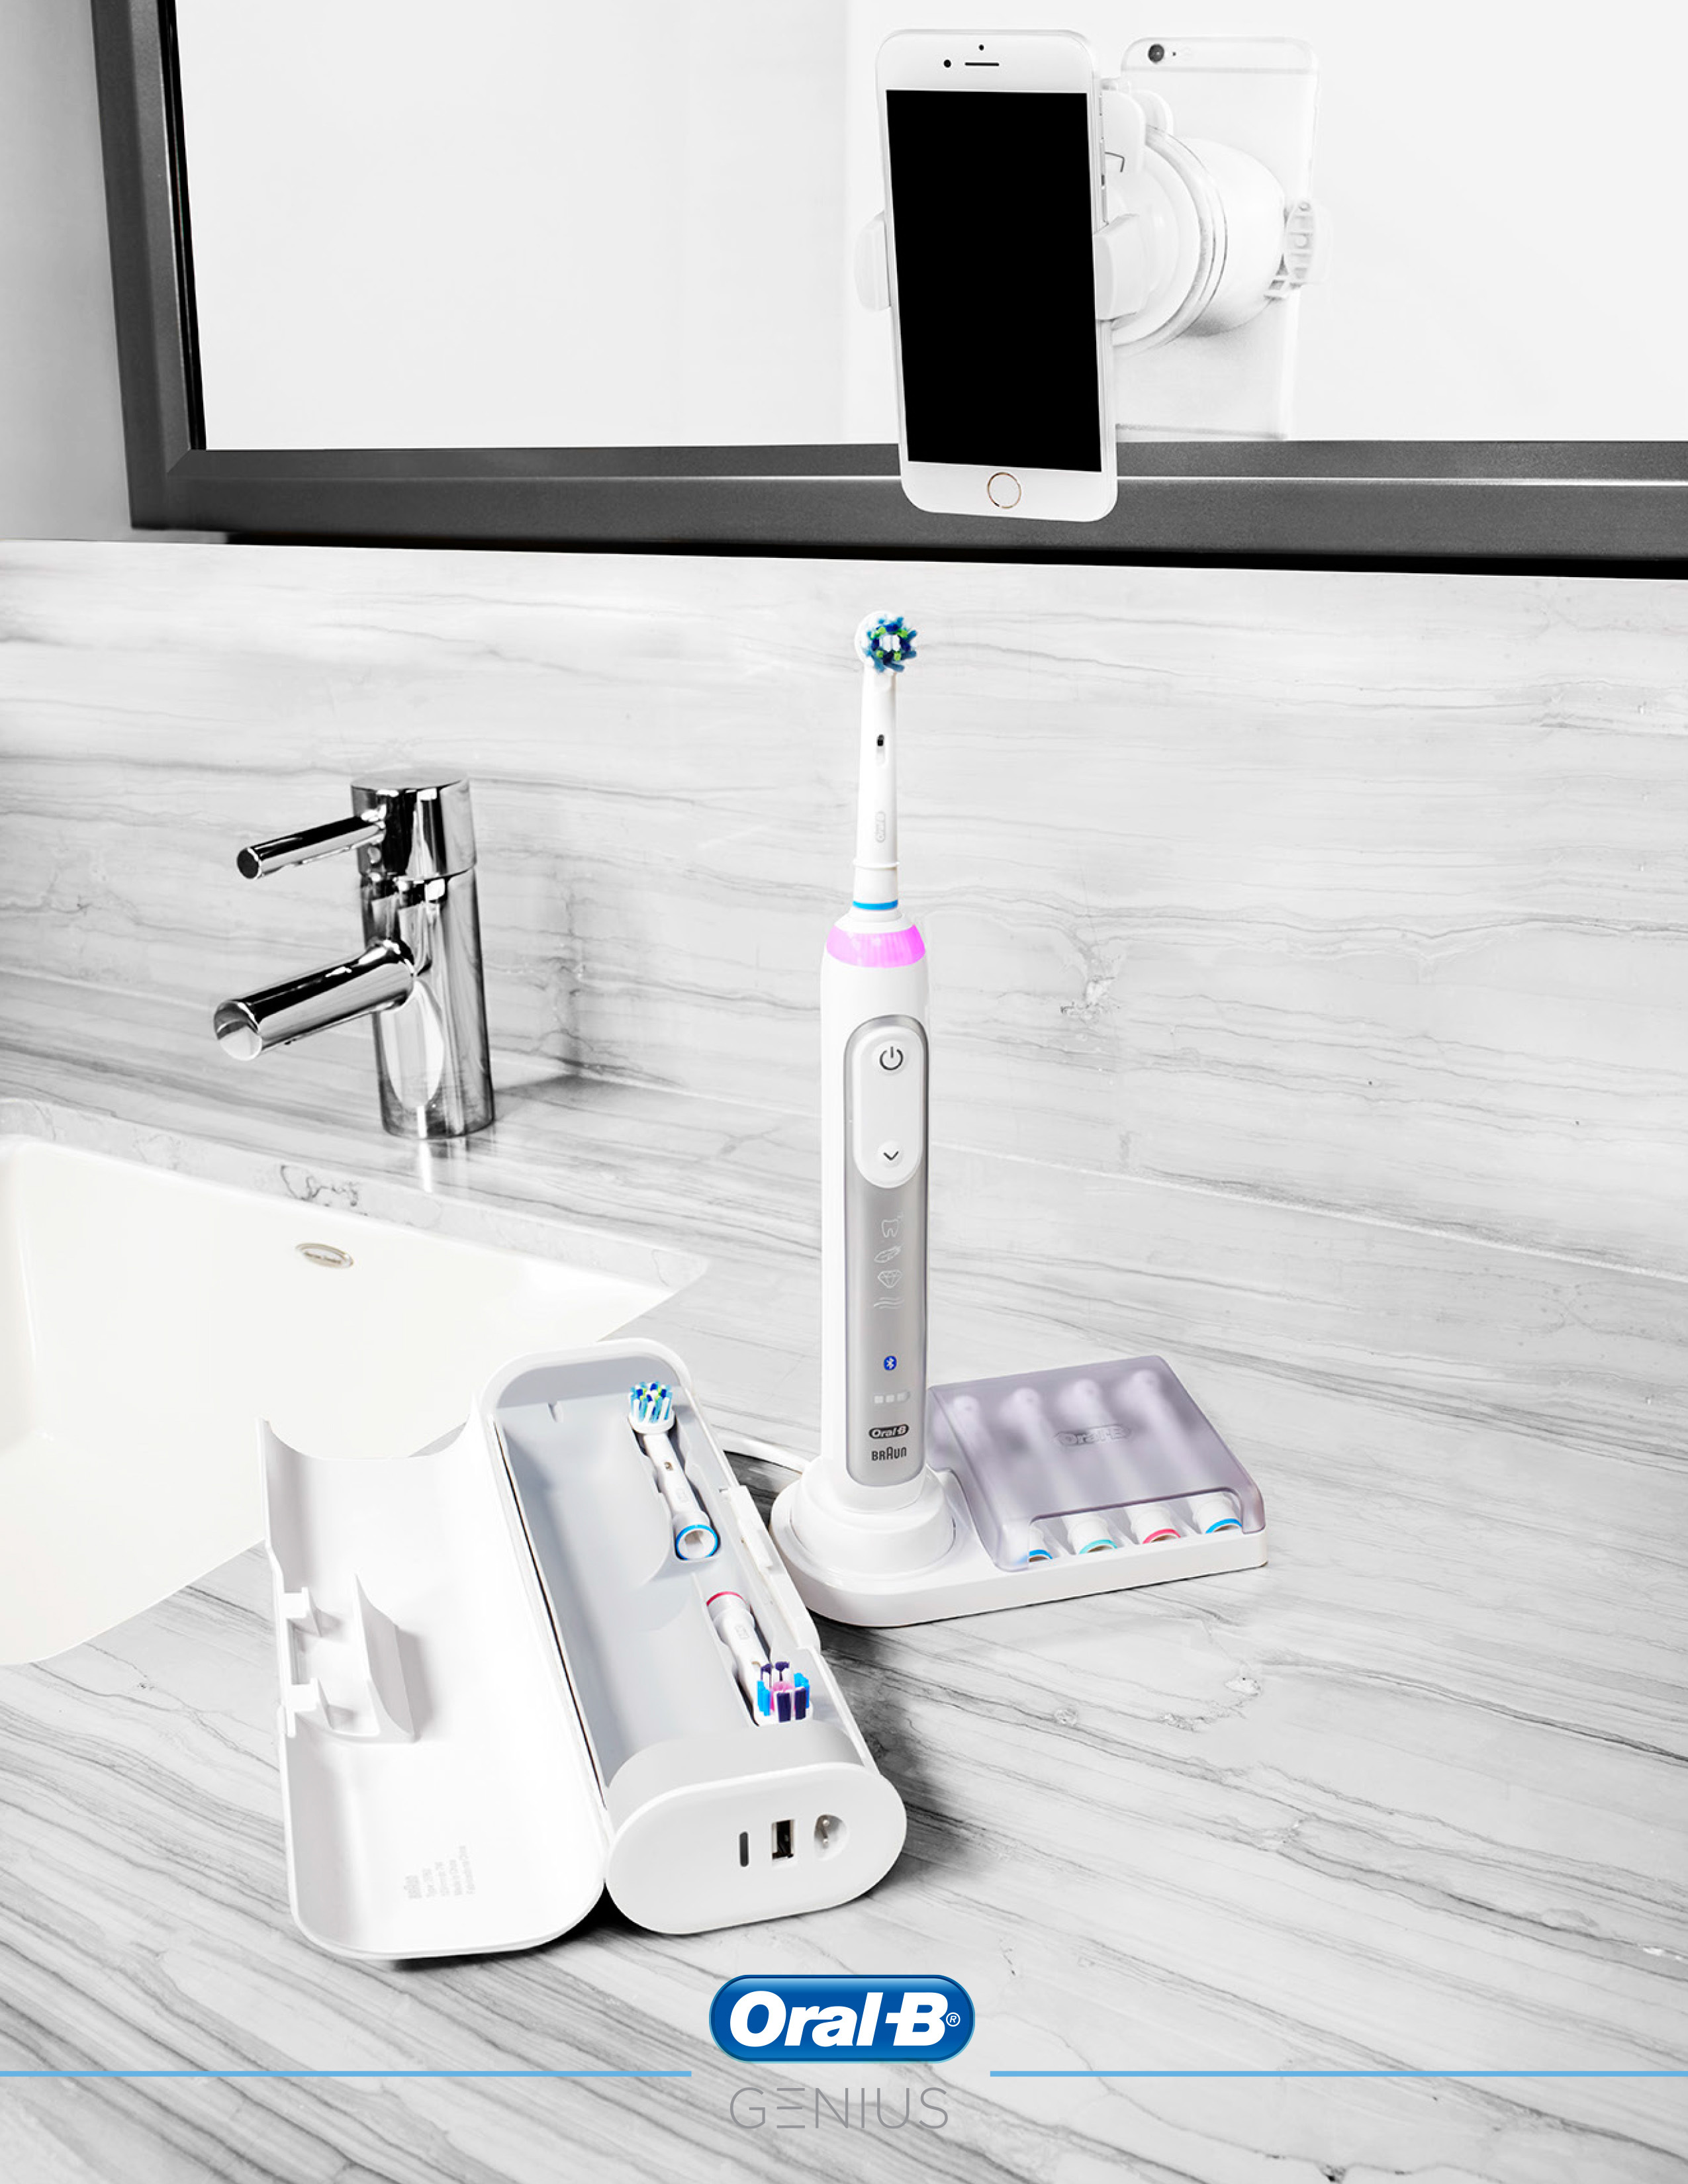 Oral-b genius toothbrush with travel case lifestyle image